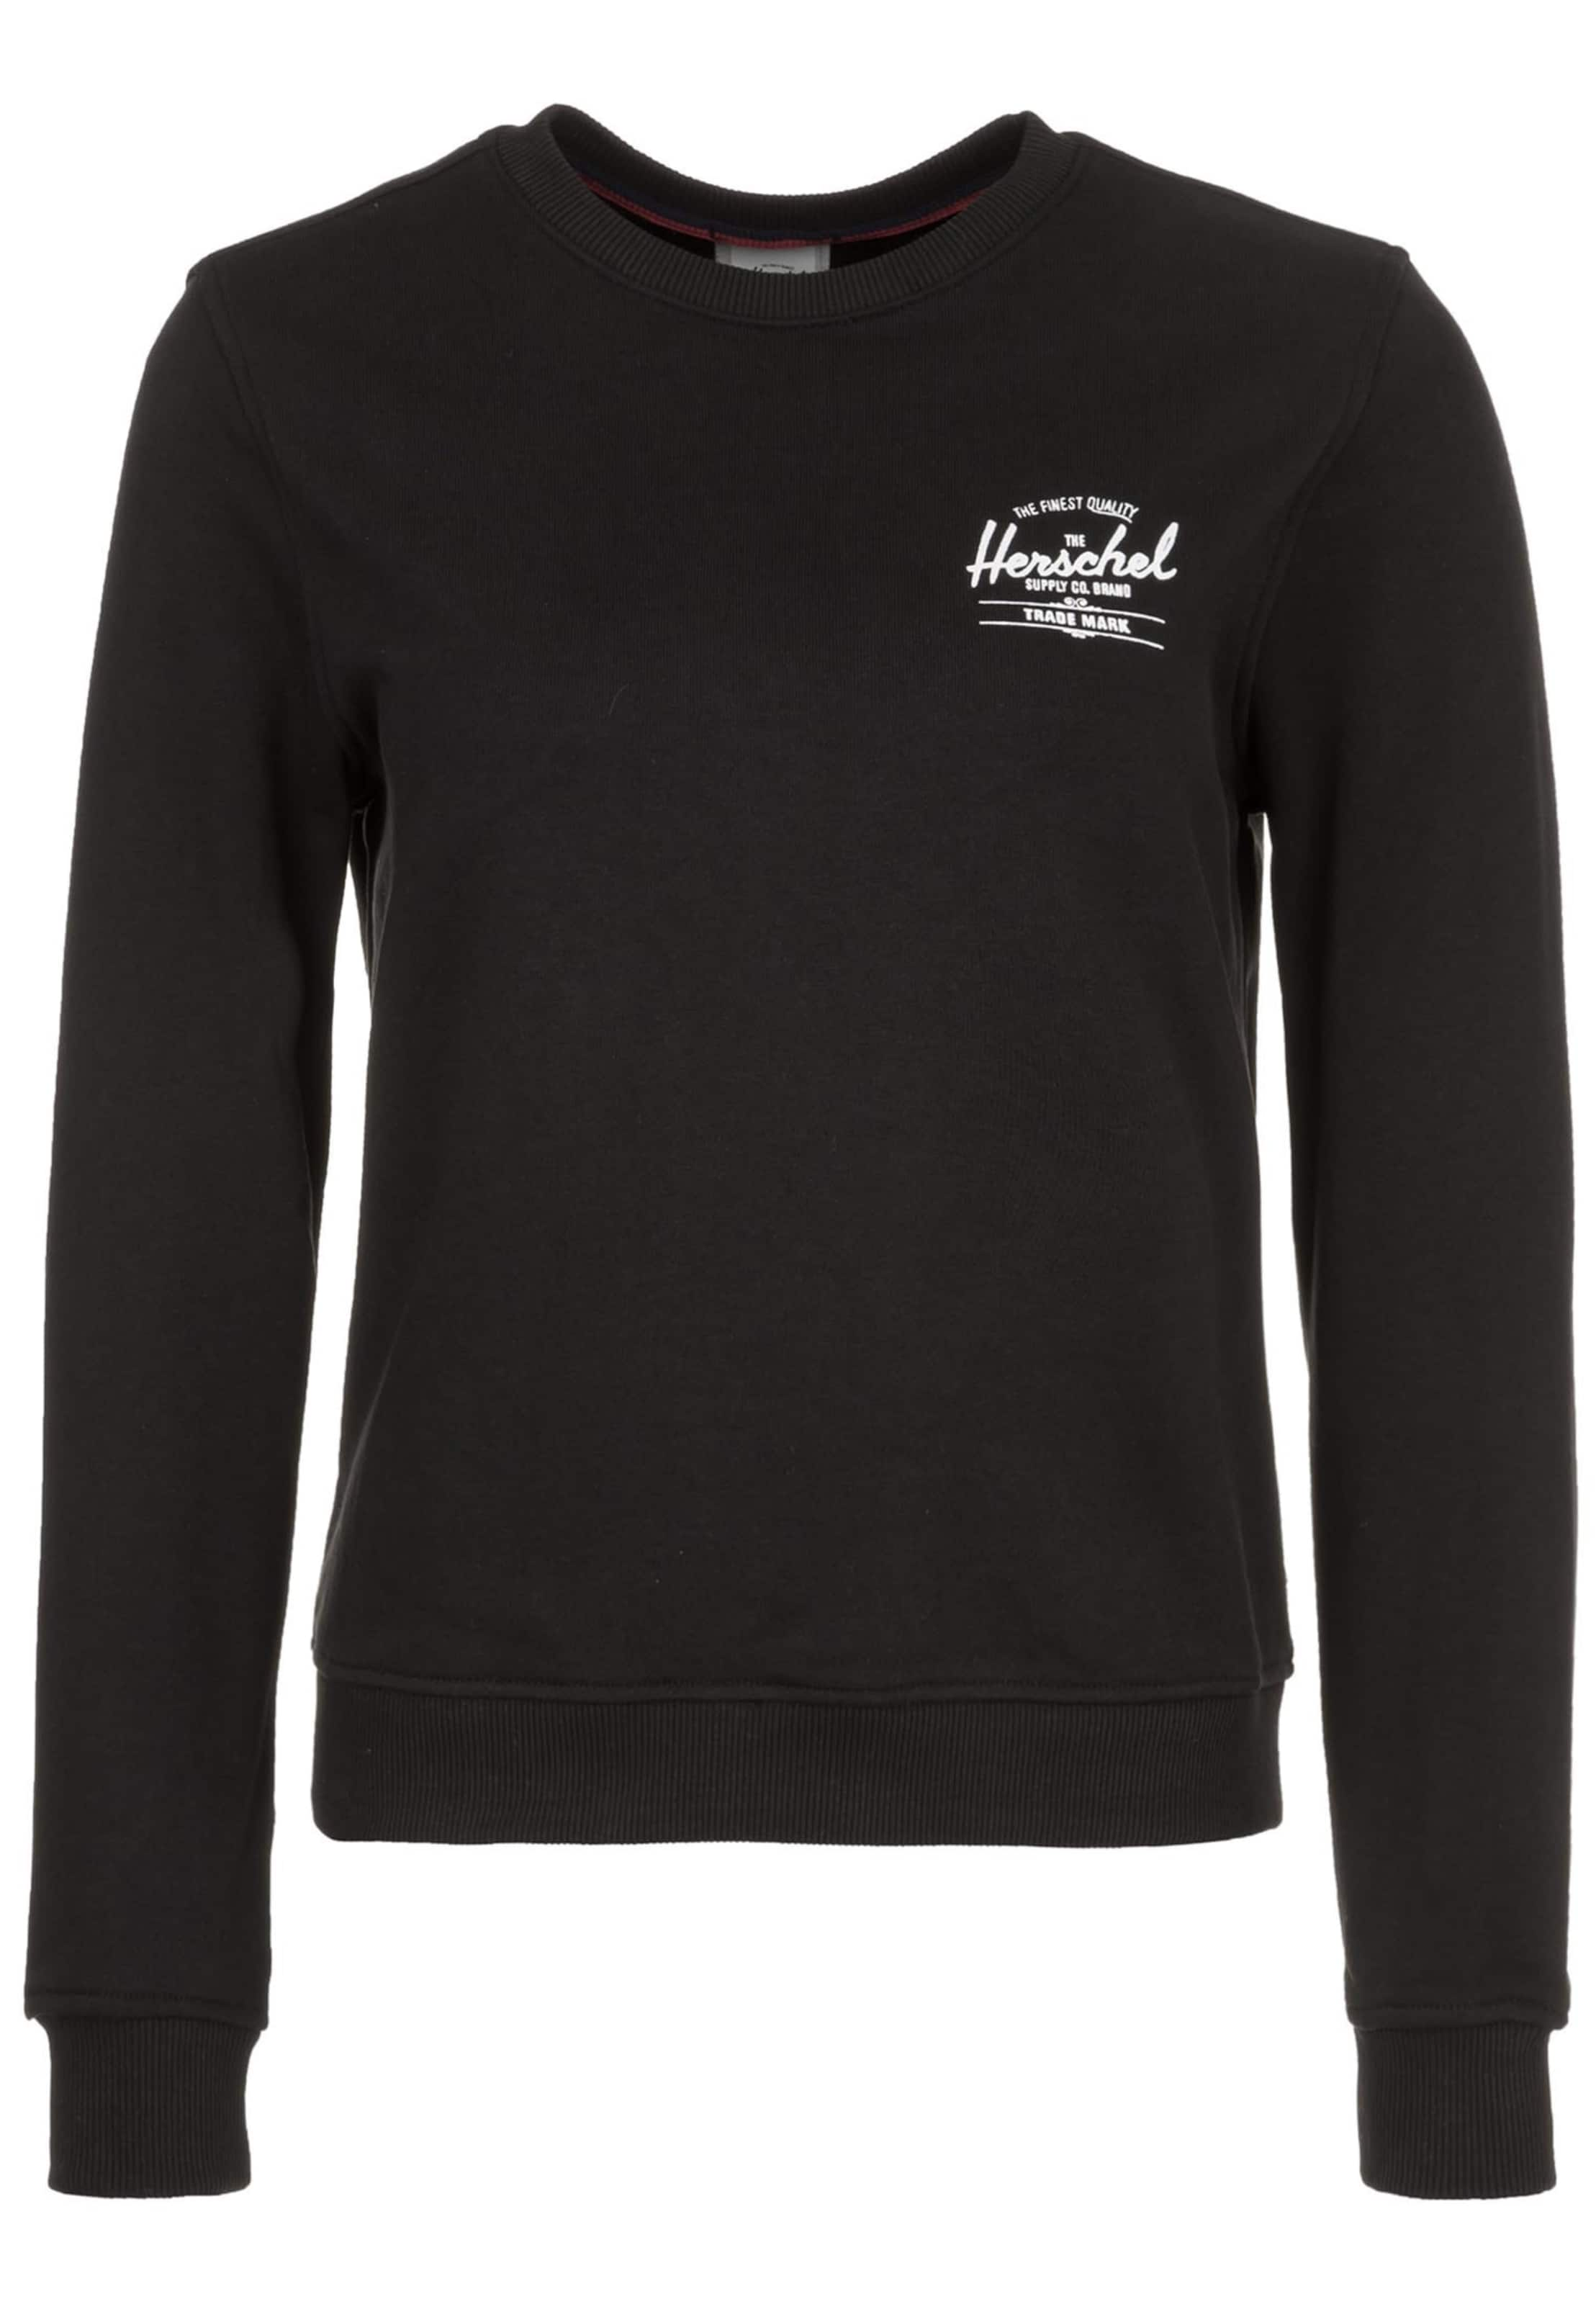 Herschel En NoirBlanc shirt Sweat En Herschel shirt Sweat MzSqVpU